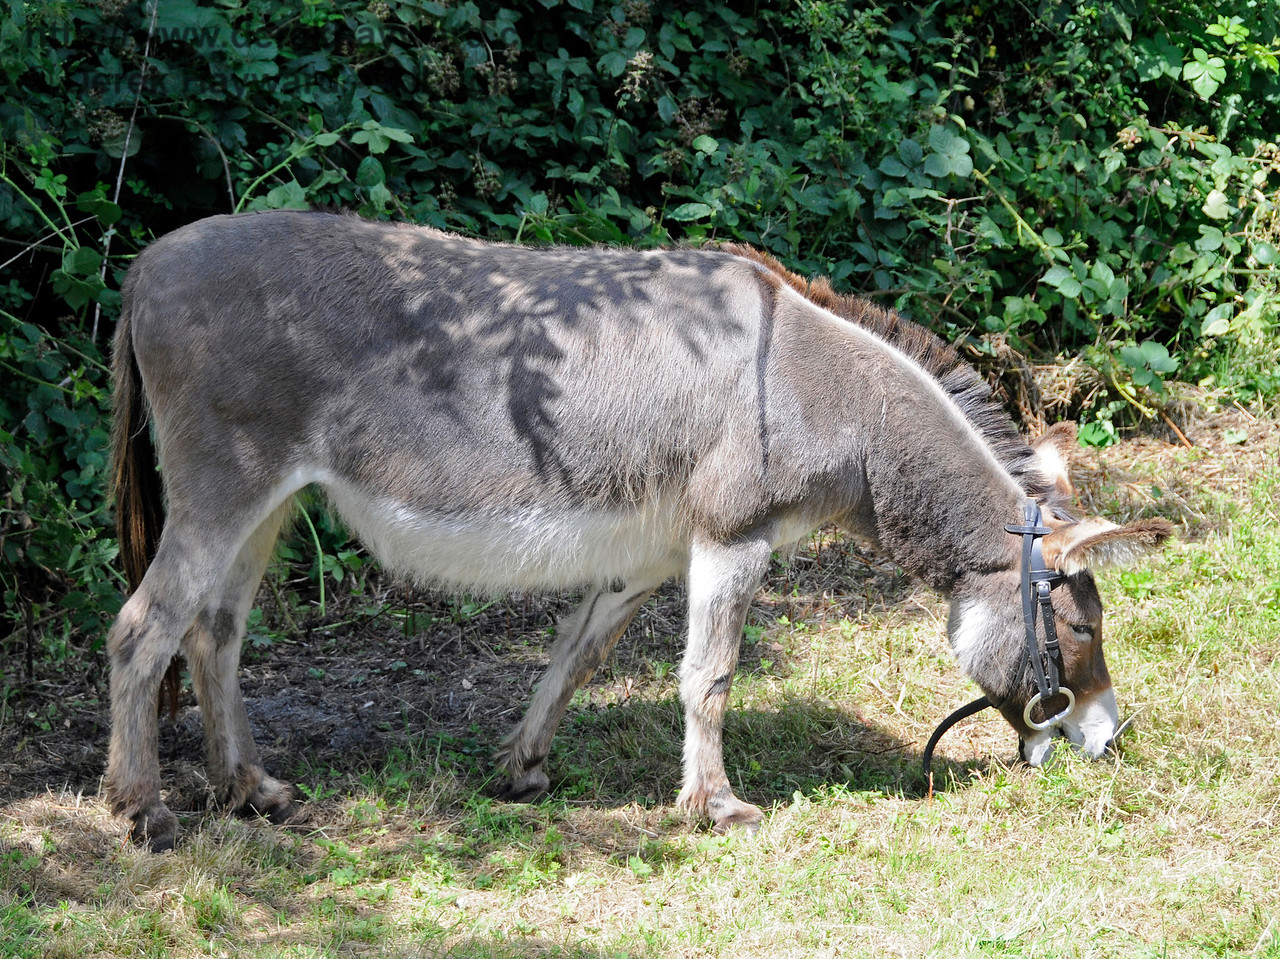 Off duty, the donkeys tucked into the hedge and grass with gusto.  Horsted Keynes  01.08.2015  13339